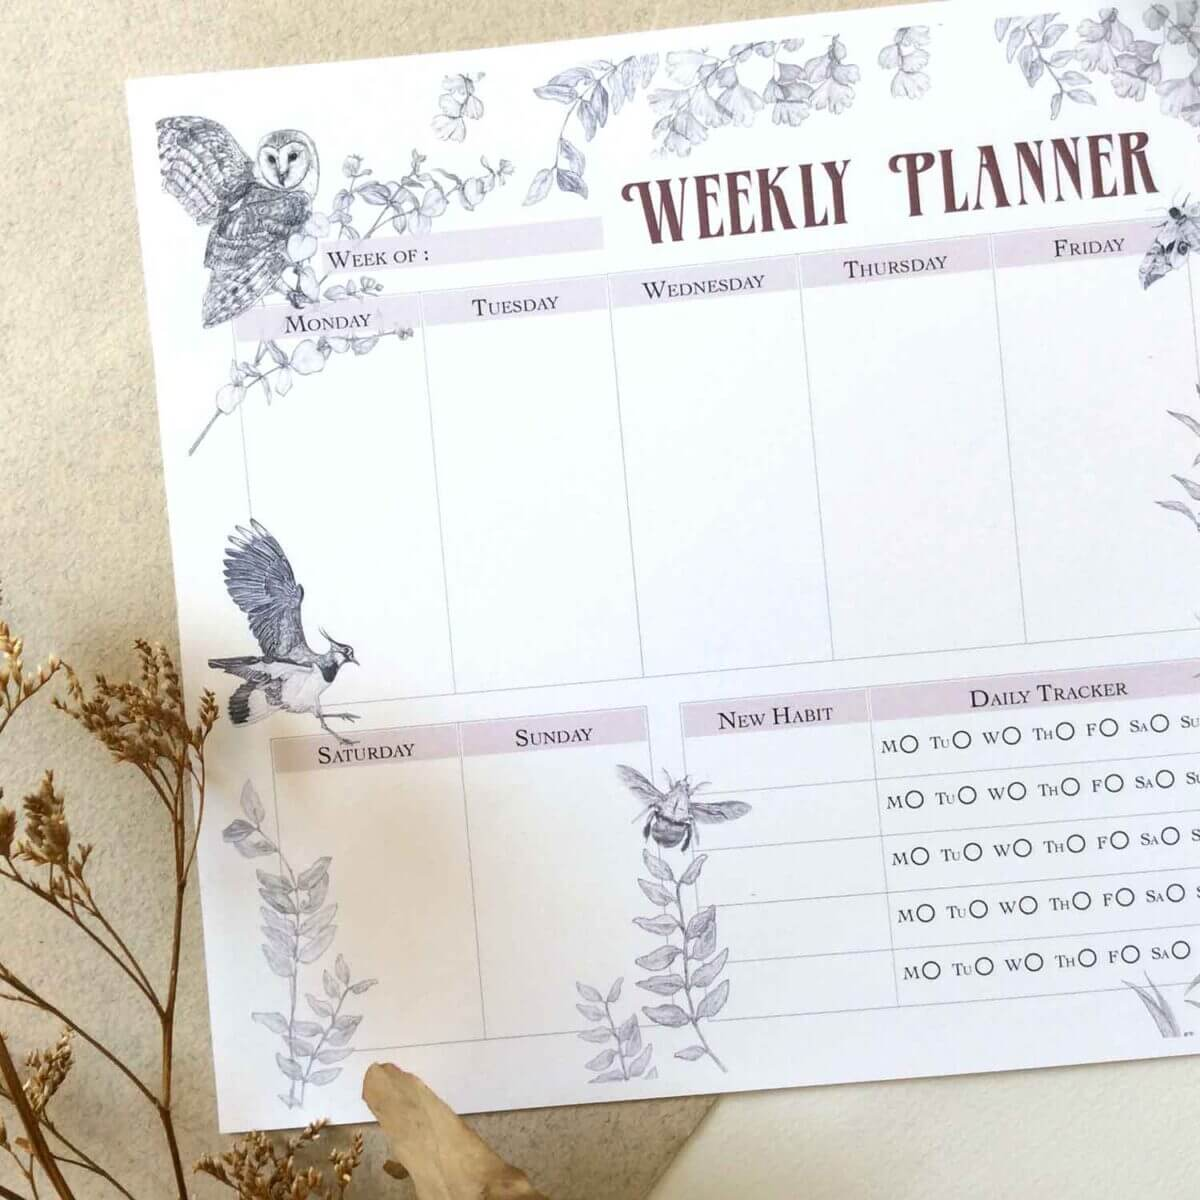 Weekly-Planner-Sheet-Left-Sky-Siouki